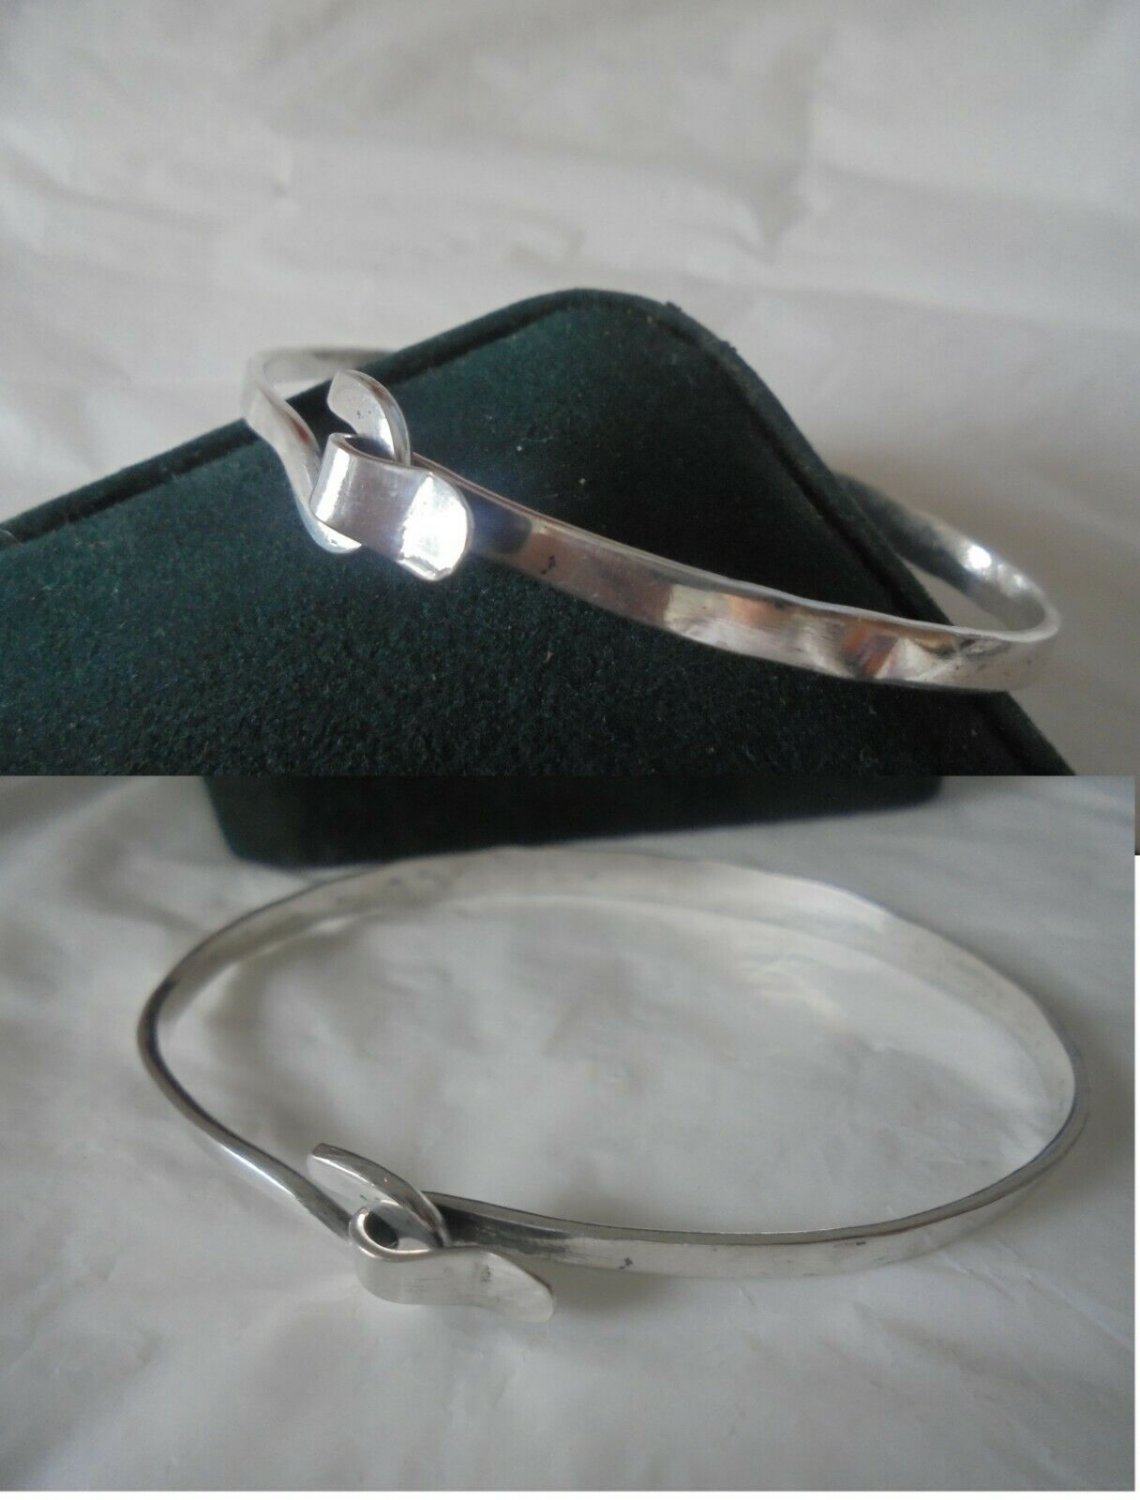 BRACELET IN SILVER 800 WITH KNOT FROM 1960s IN GIFT BOX ORIGINAL